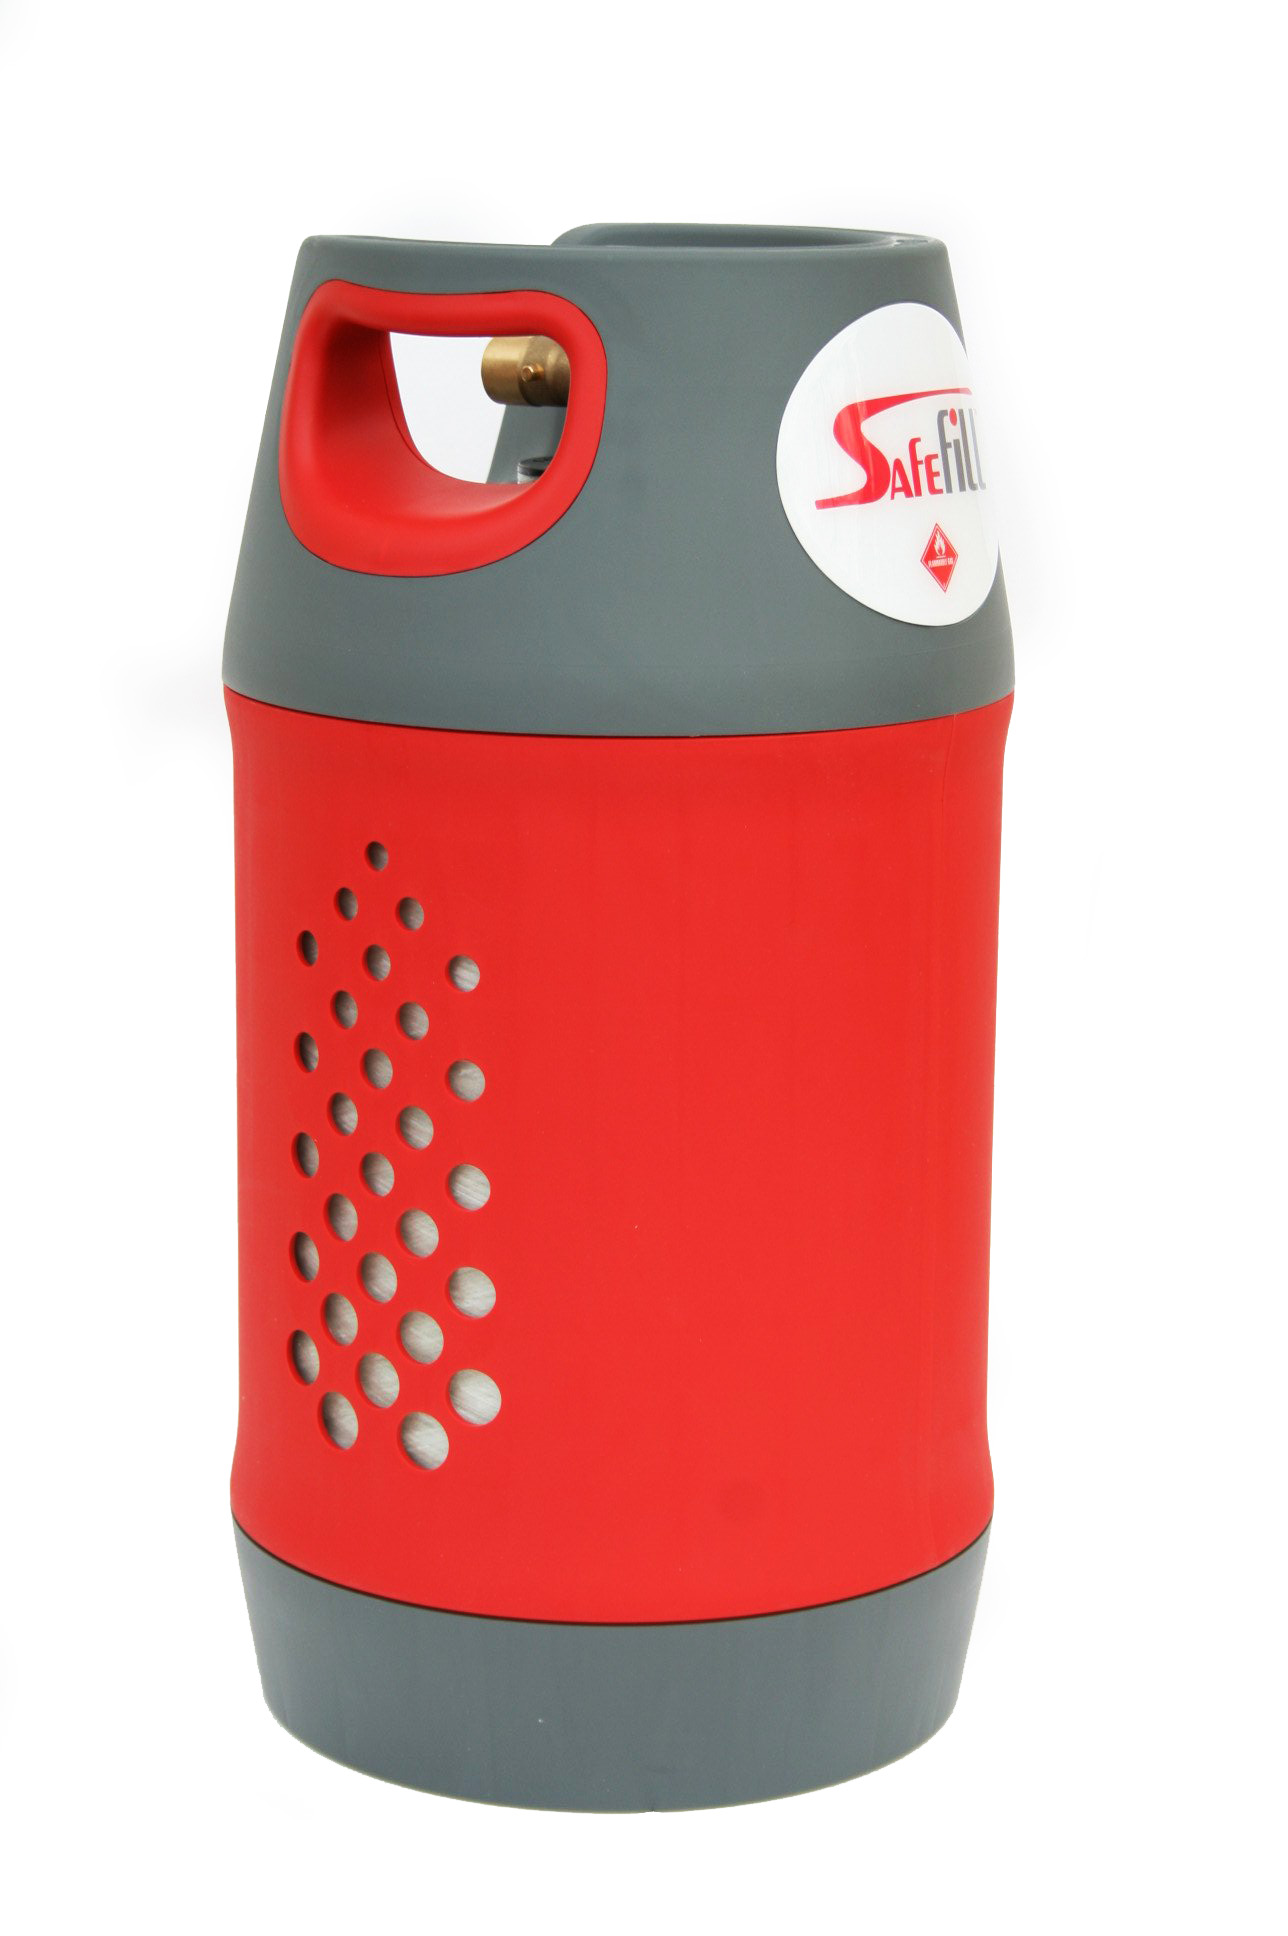 Safefill 10kg refillable propane cylinder